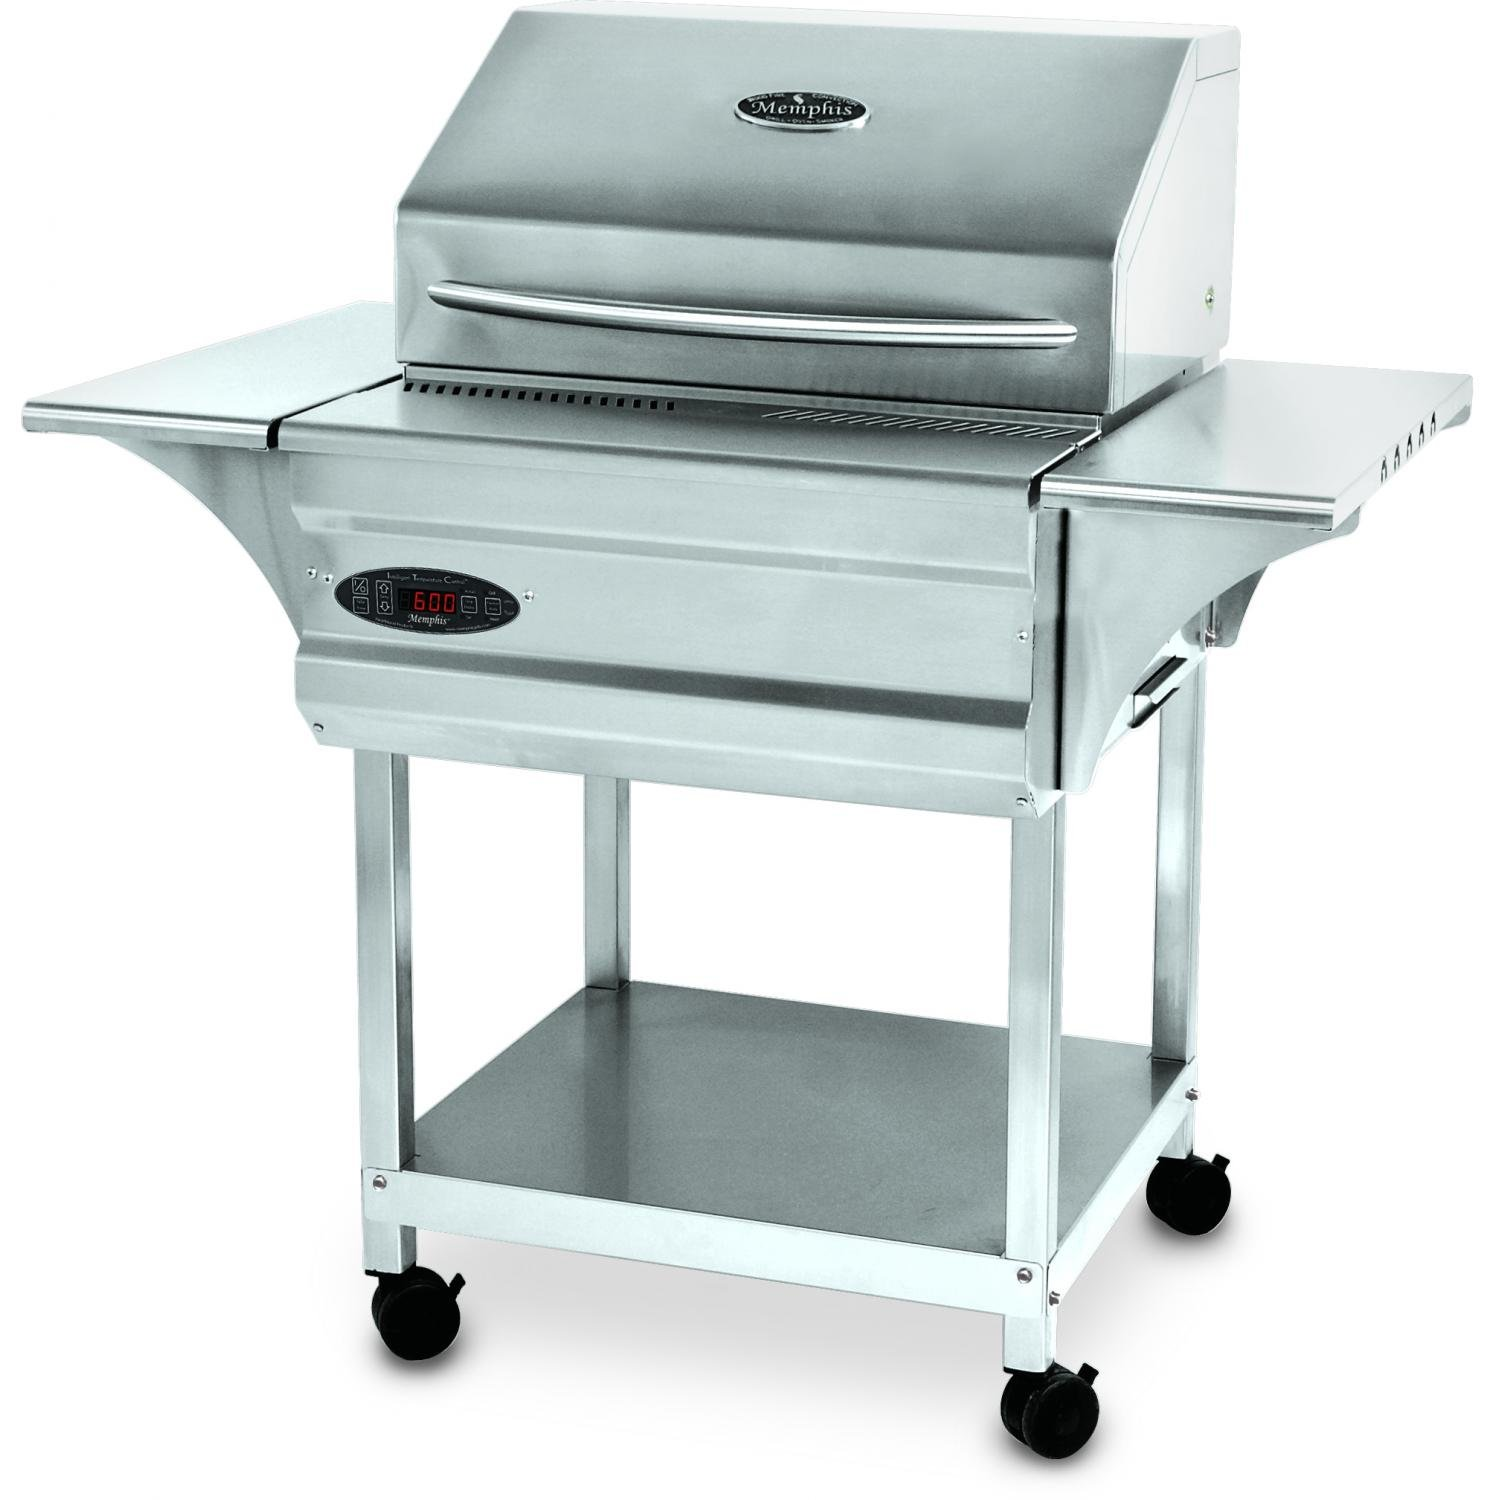 Memphis Grills Advantage Plus Wood Fire Pellet Smoker WiFi (VG0050S4-P), Freestanding, 430 Stainless Steel Alloy